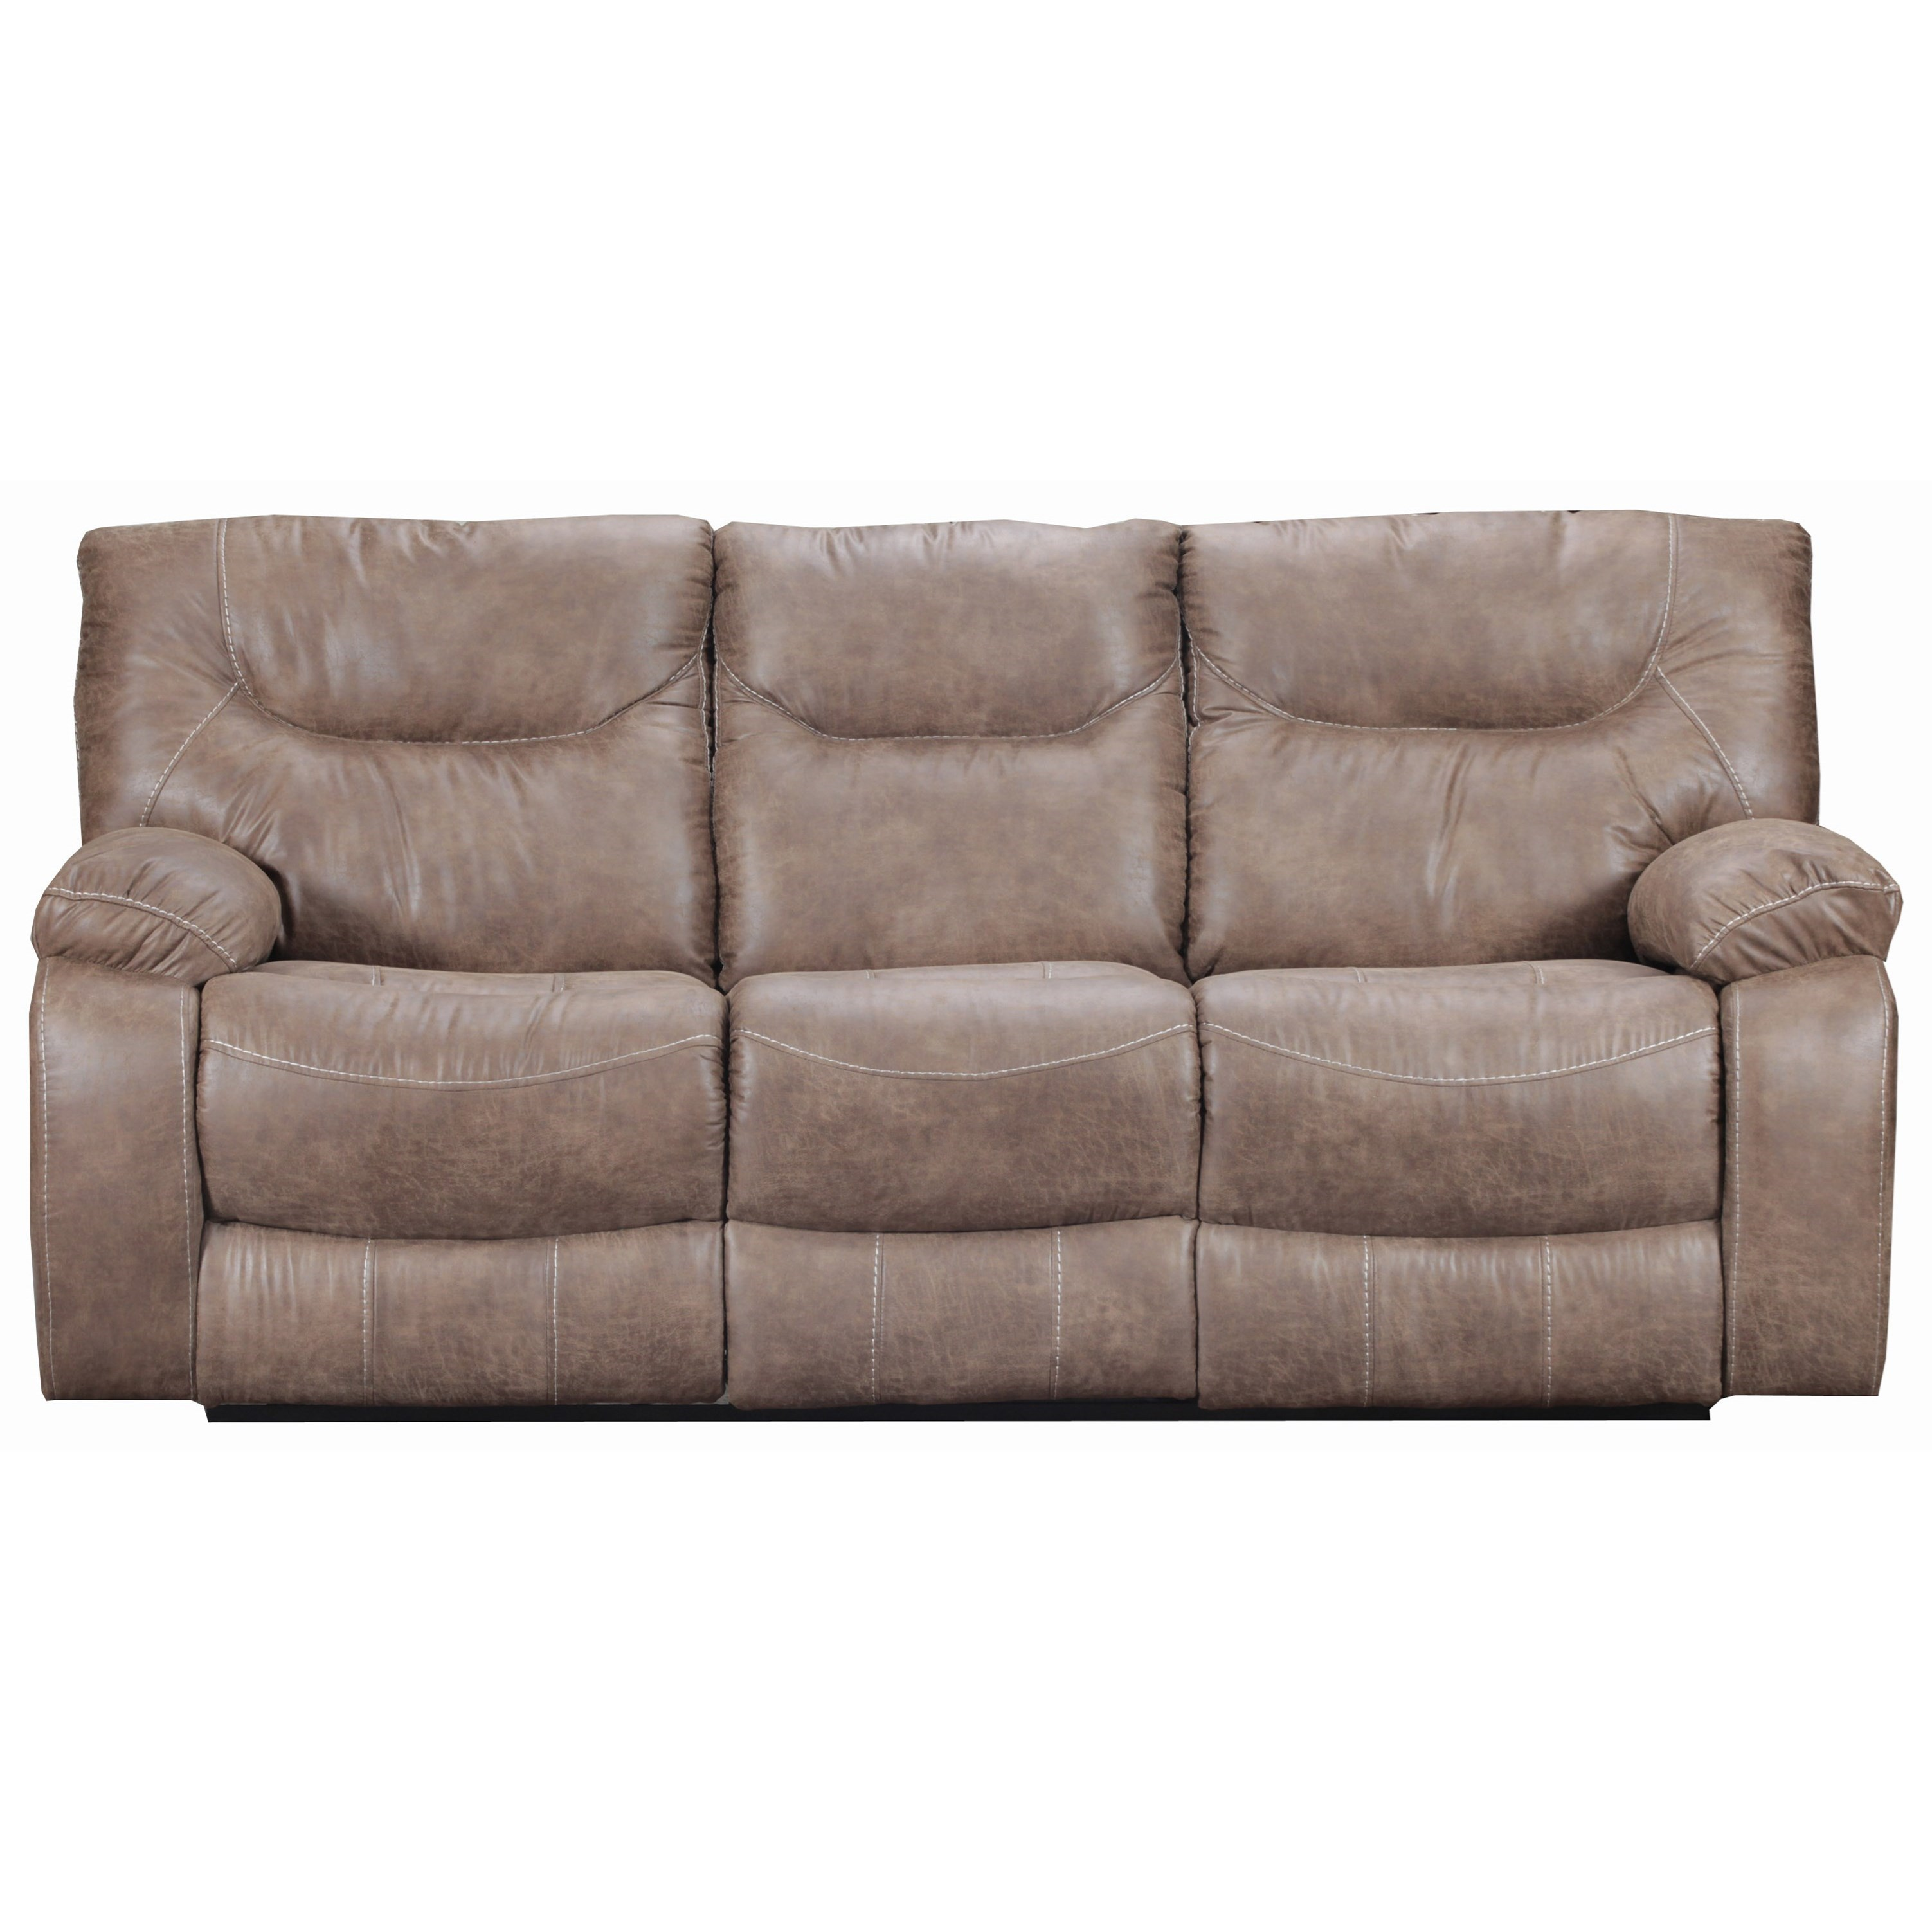 50250 BR Casual Double Motion Sofa by United Furniture Industries at Bullard Furniture